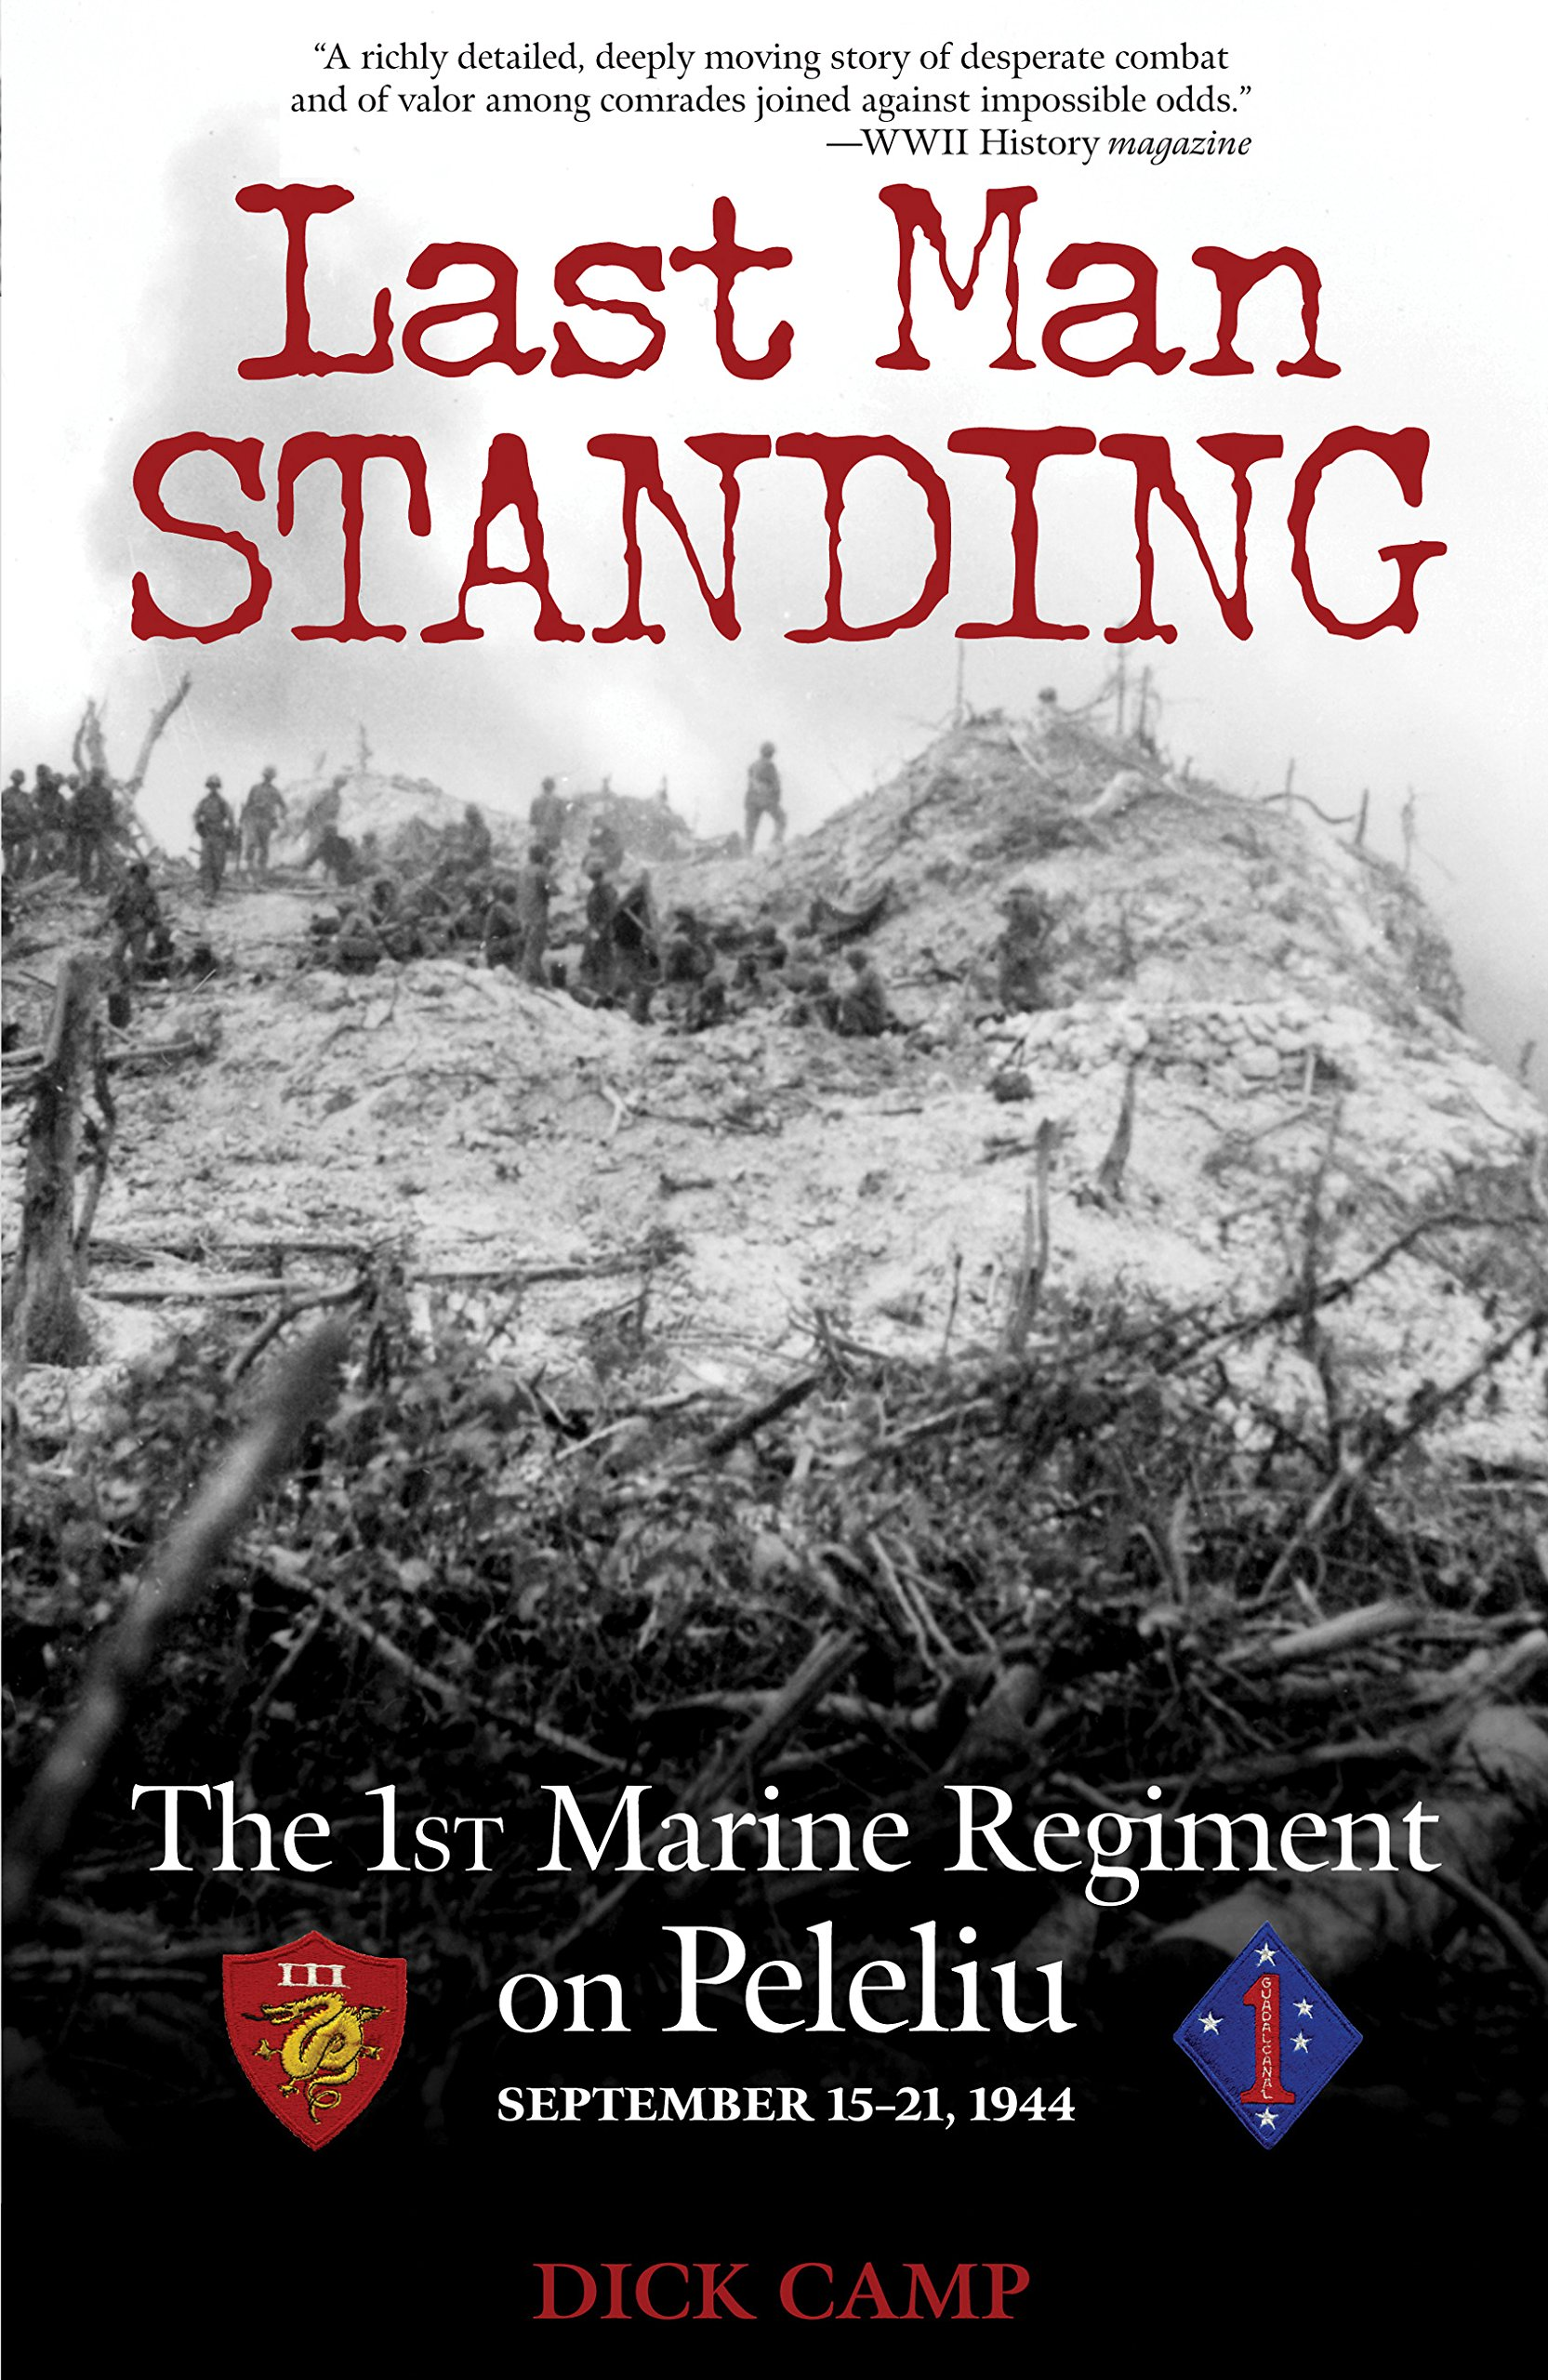 Last Man Standing: The 1st Marine Regiment on Peleliu, September 15-21, 1944 by Zenith Press